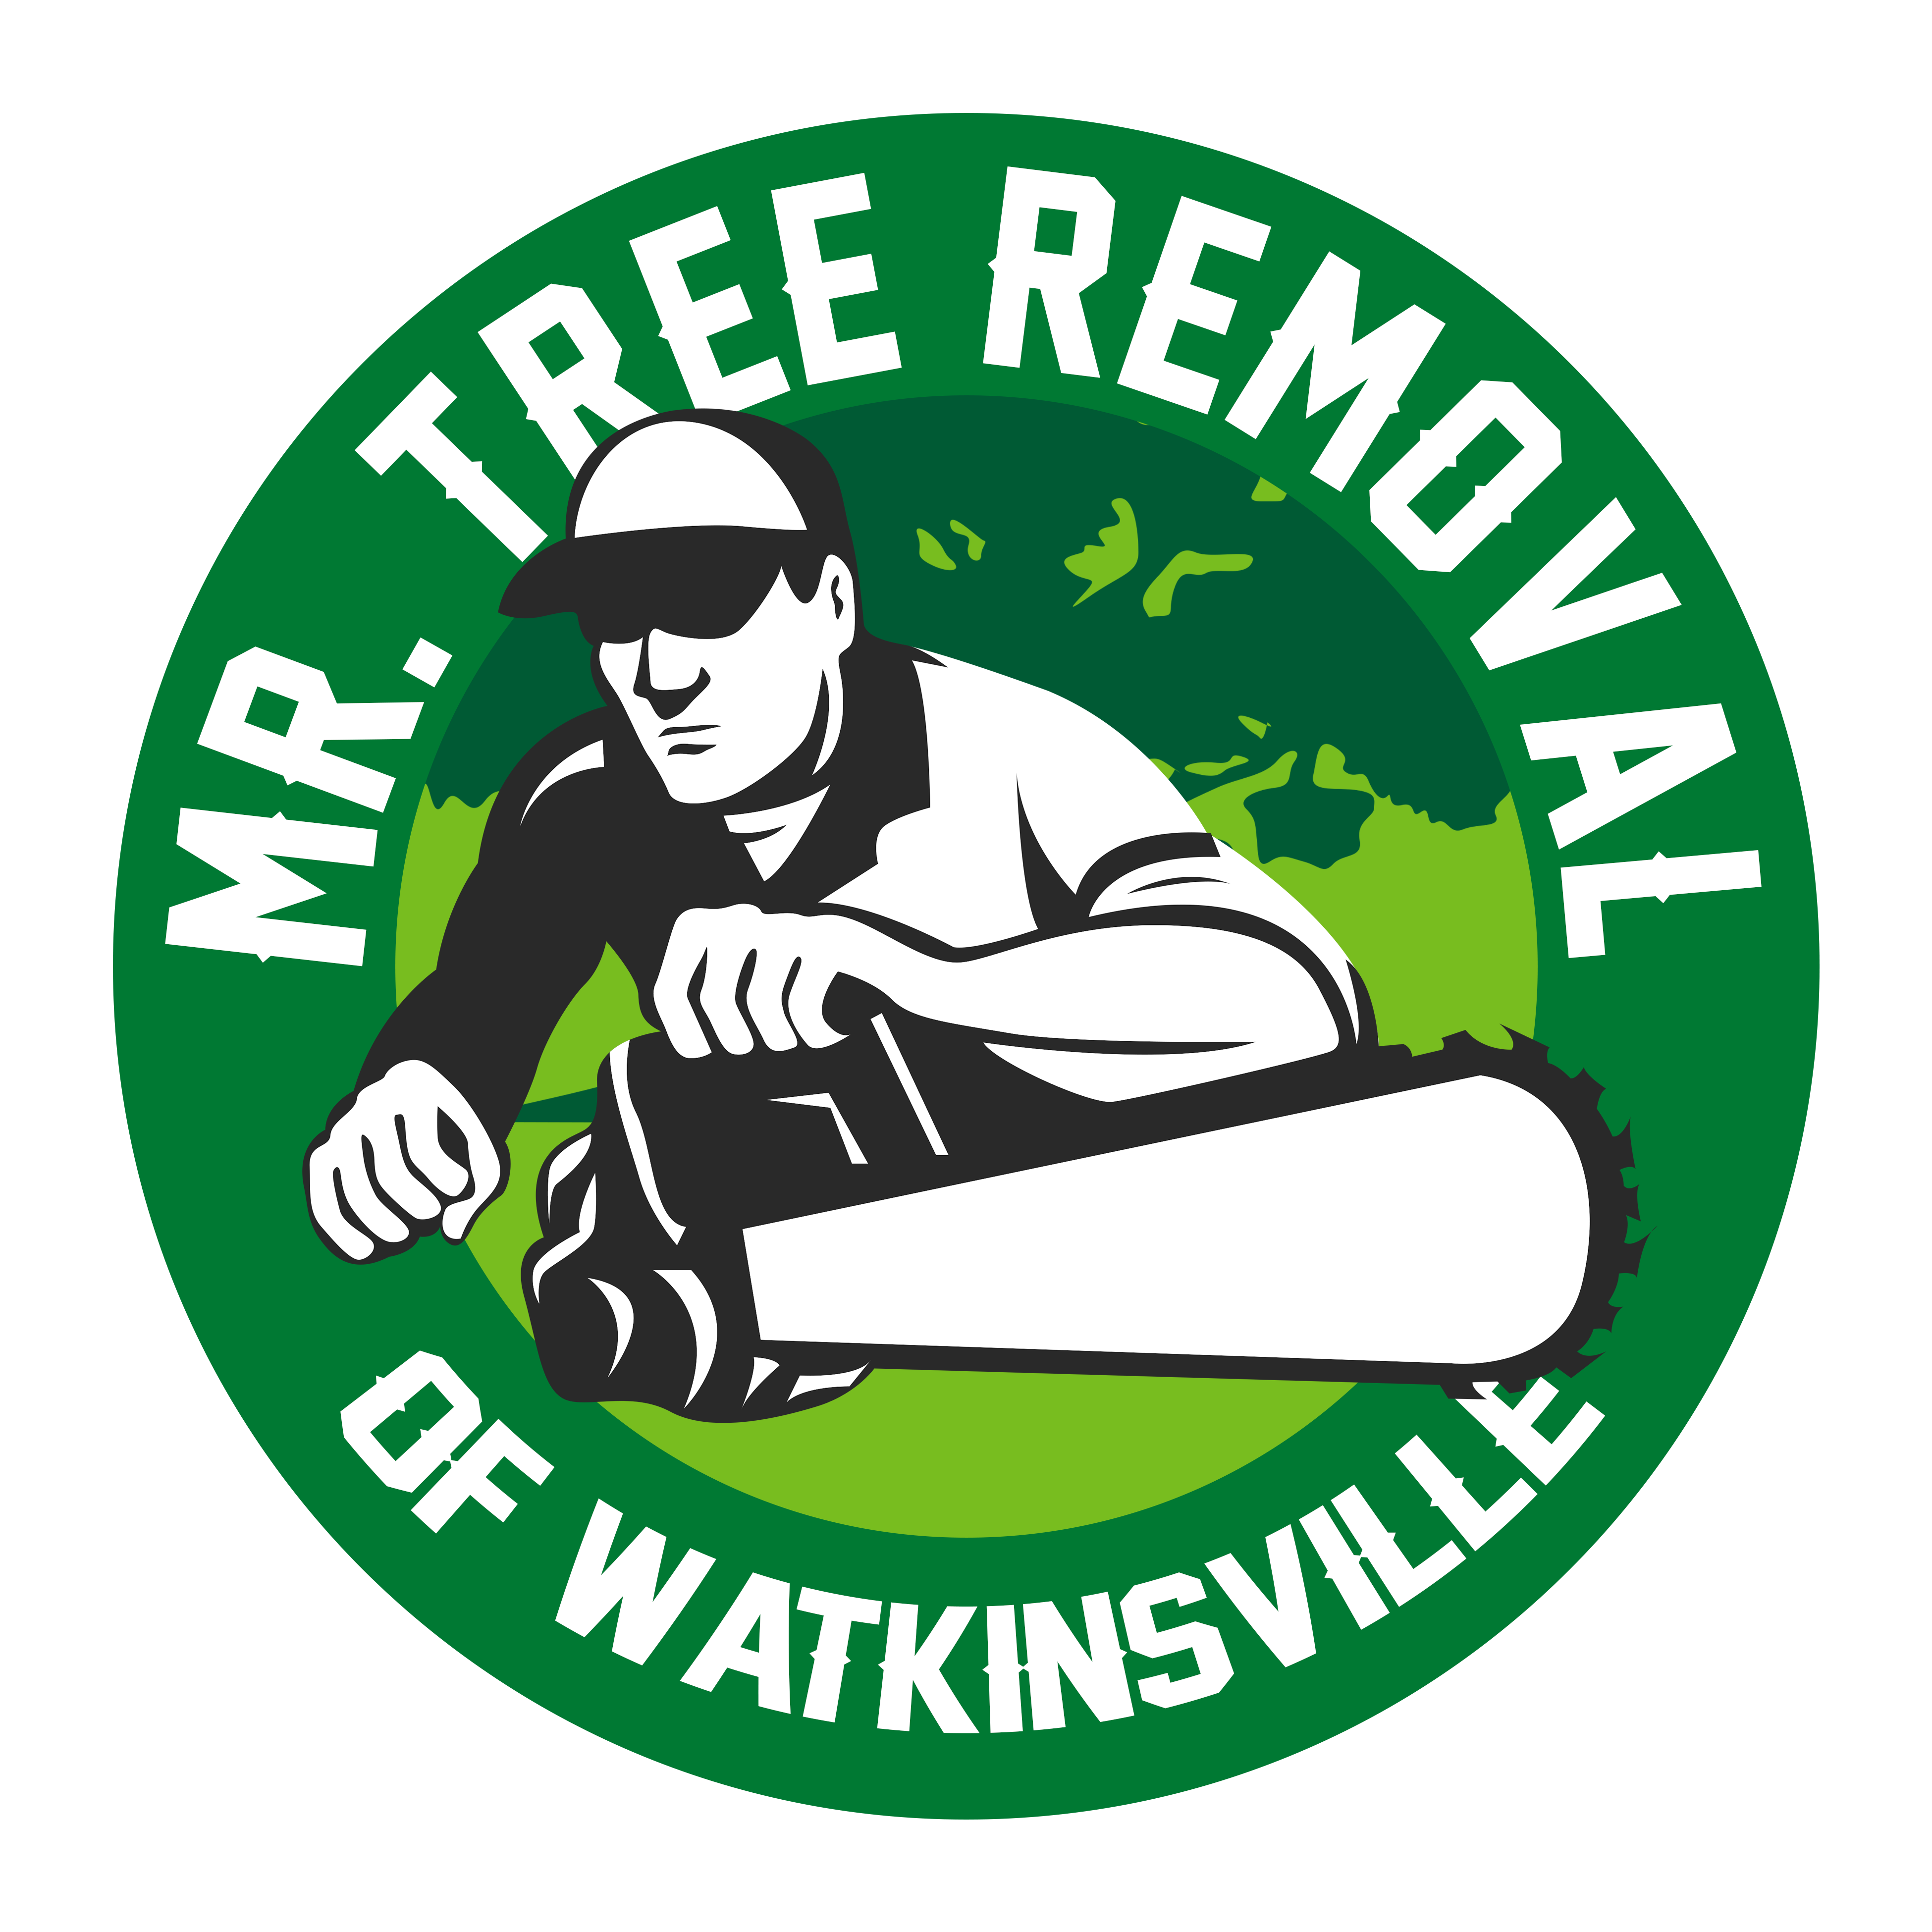 Mr Tree Removal of Watkinsville